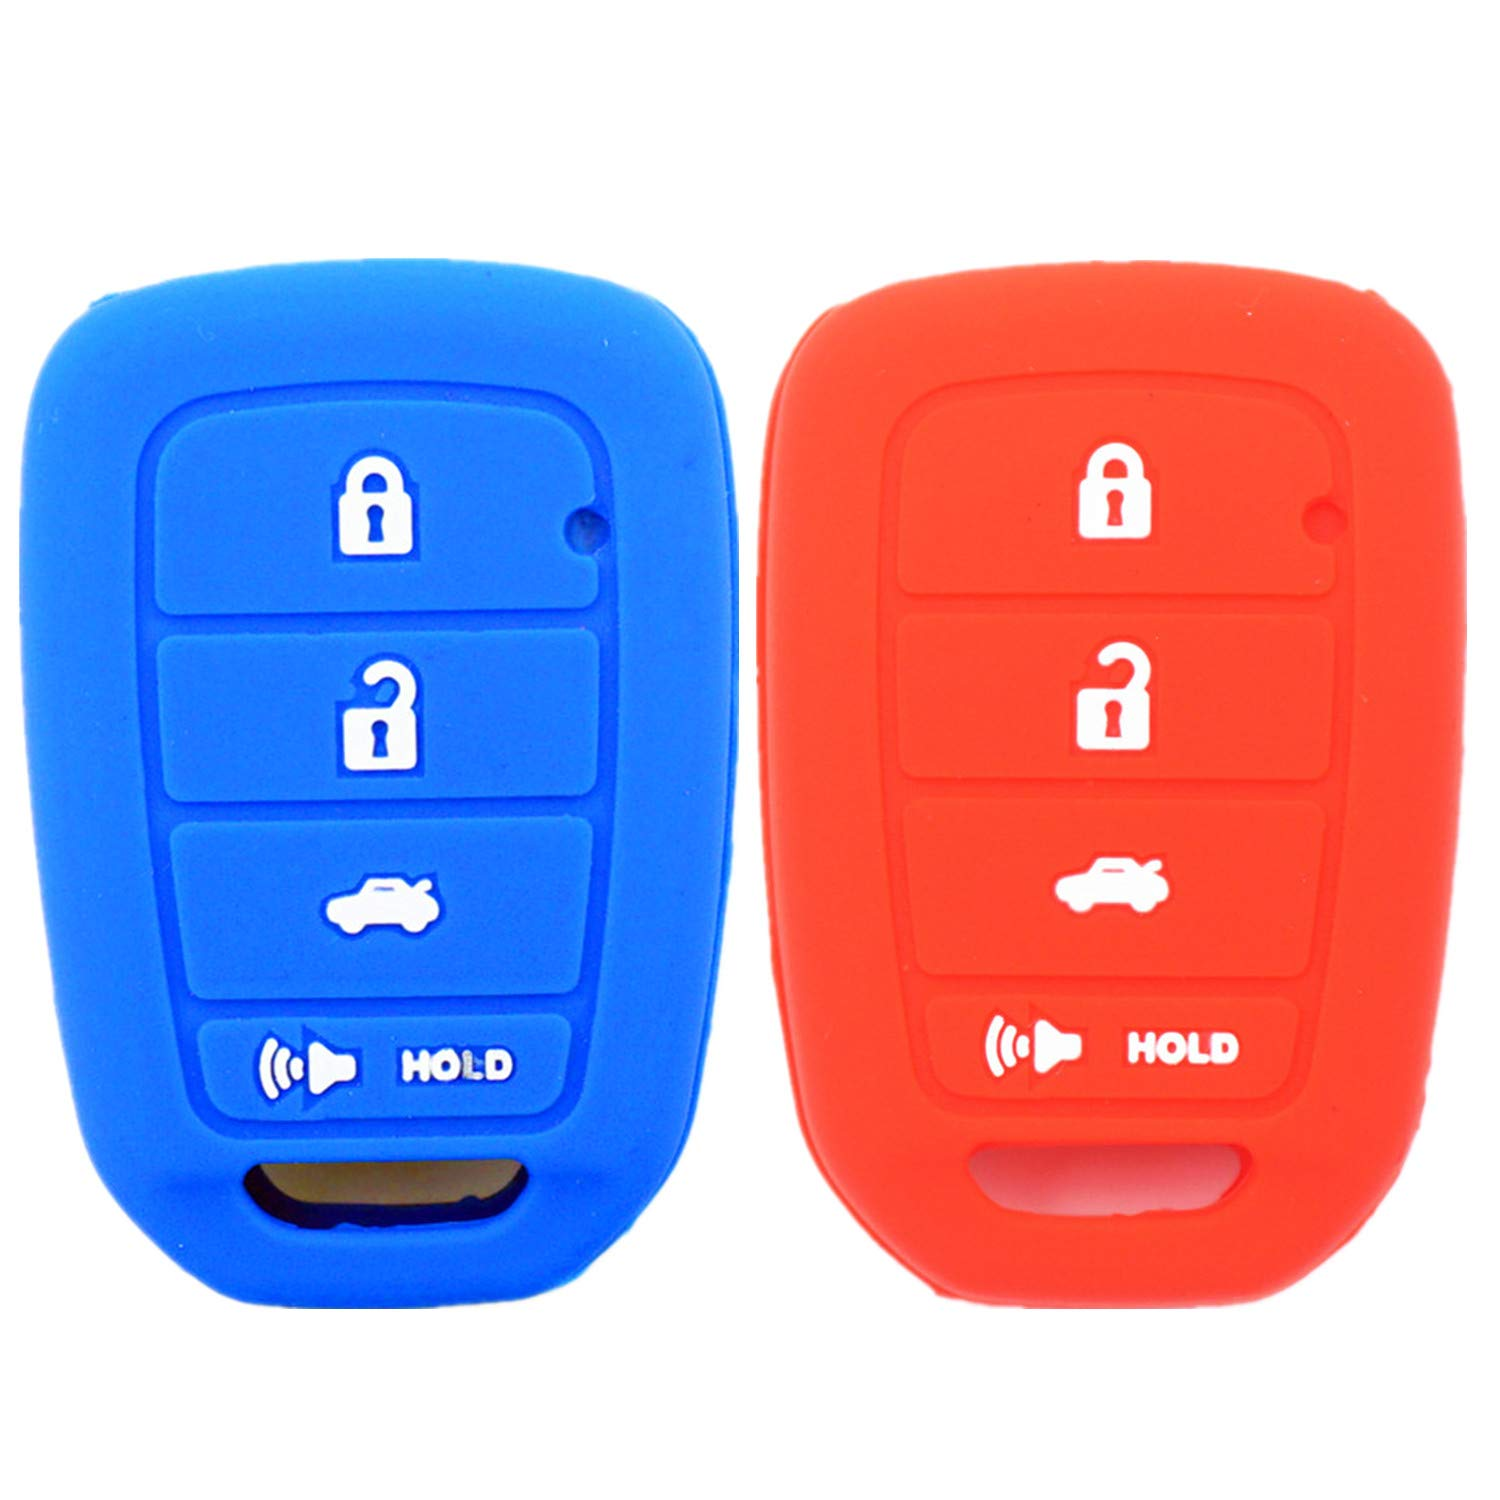 WFMJ 2Pcs Red Blue Silicone for Honda Accord Civic Crosstour CR-V HR-V MLBHLIK6-1TA 4 Buttons Remote Key Cover Chain Case Fob